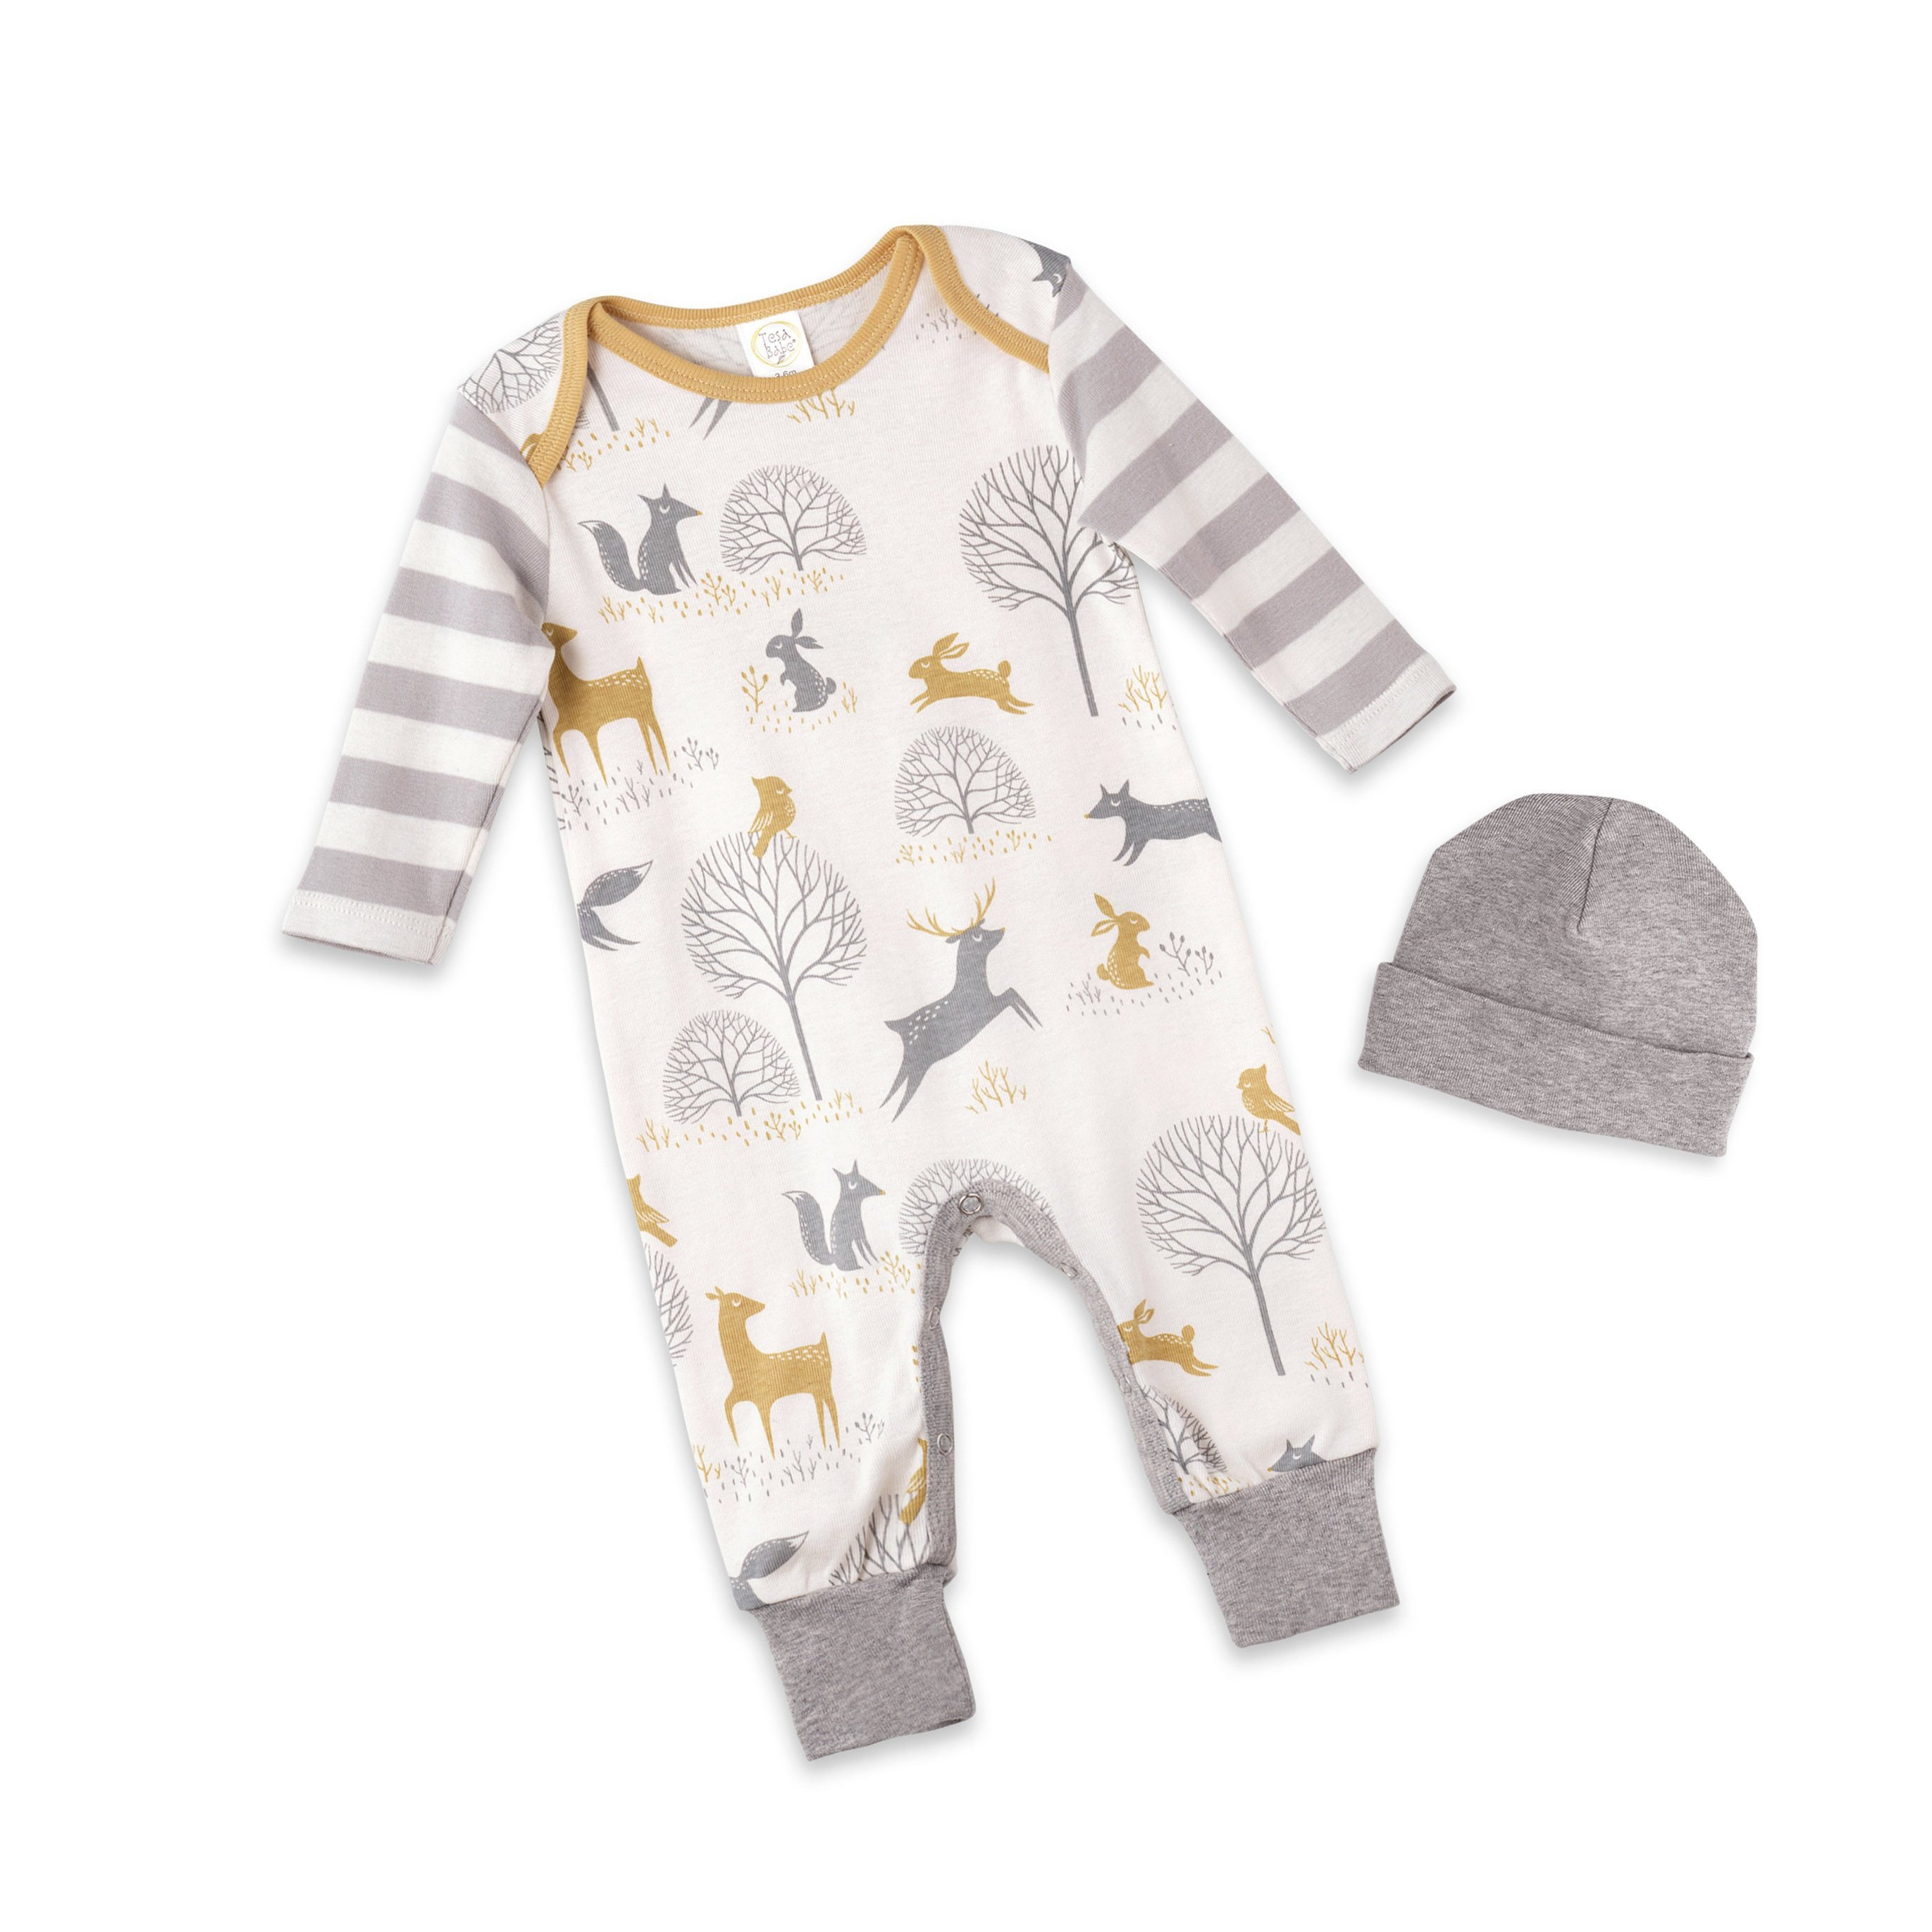 26003eb68 Newborn Unisex Coming Home Outfit